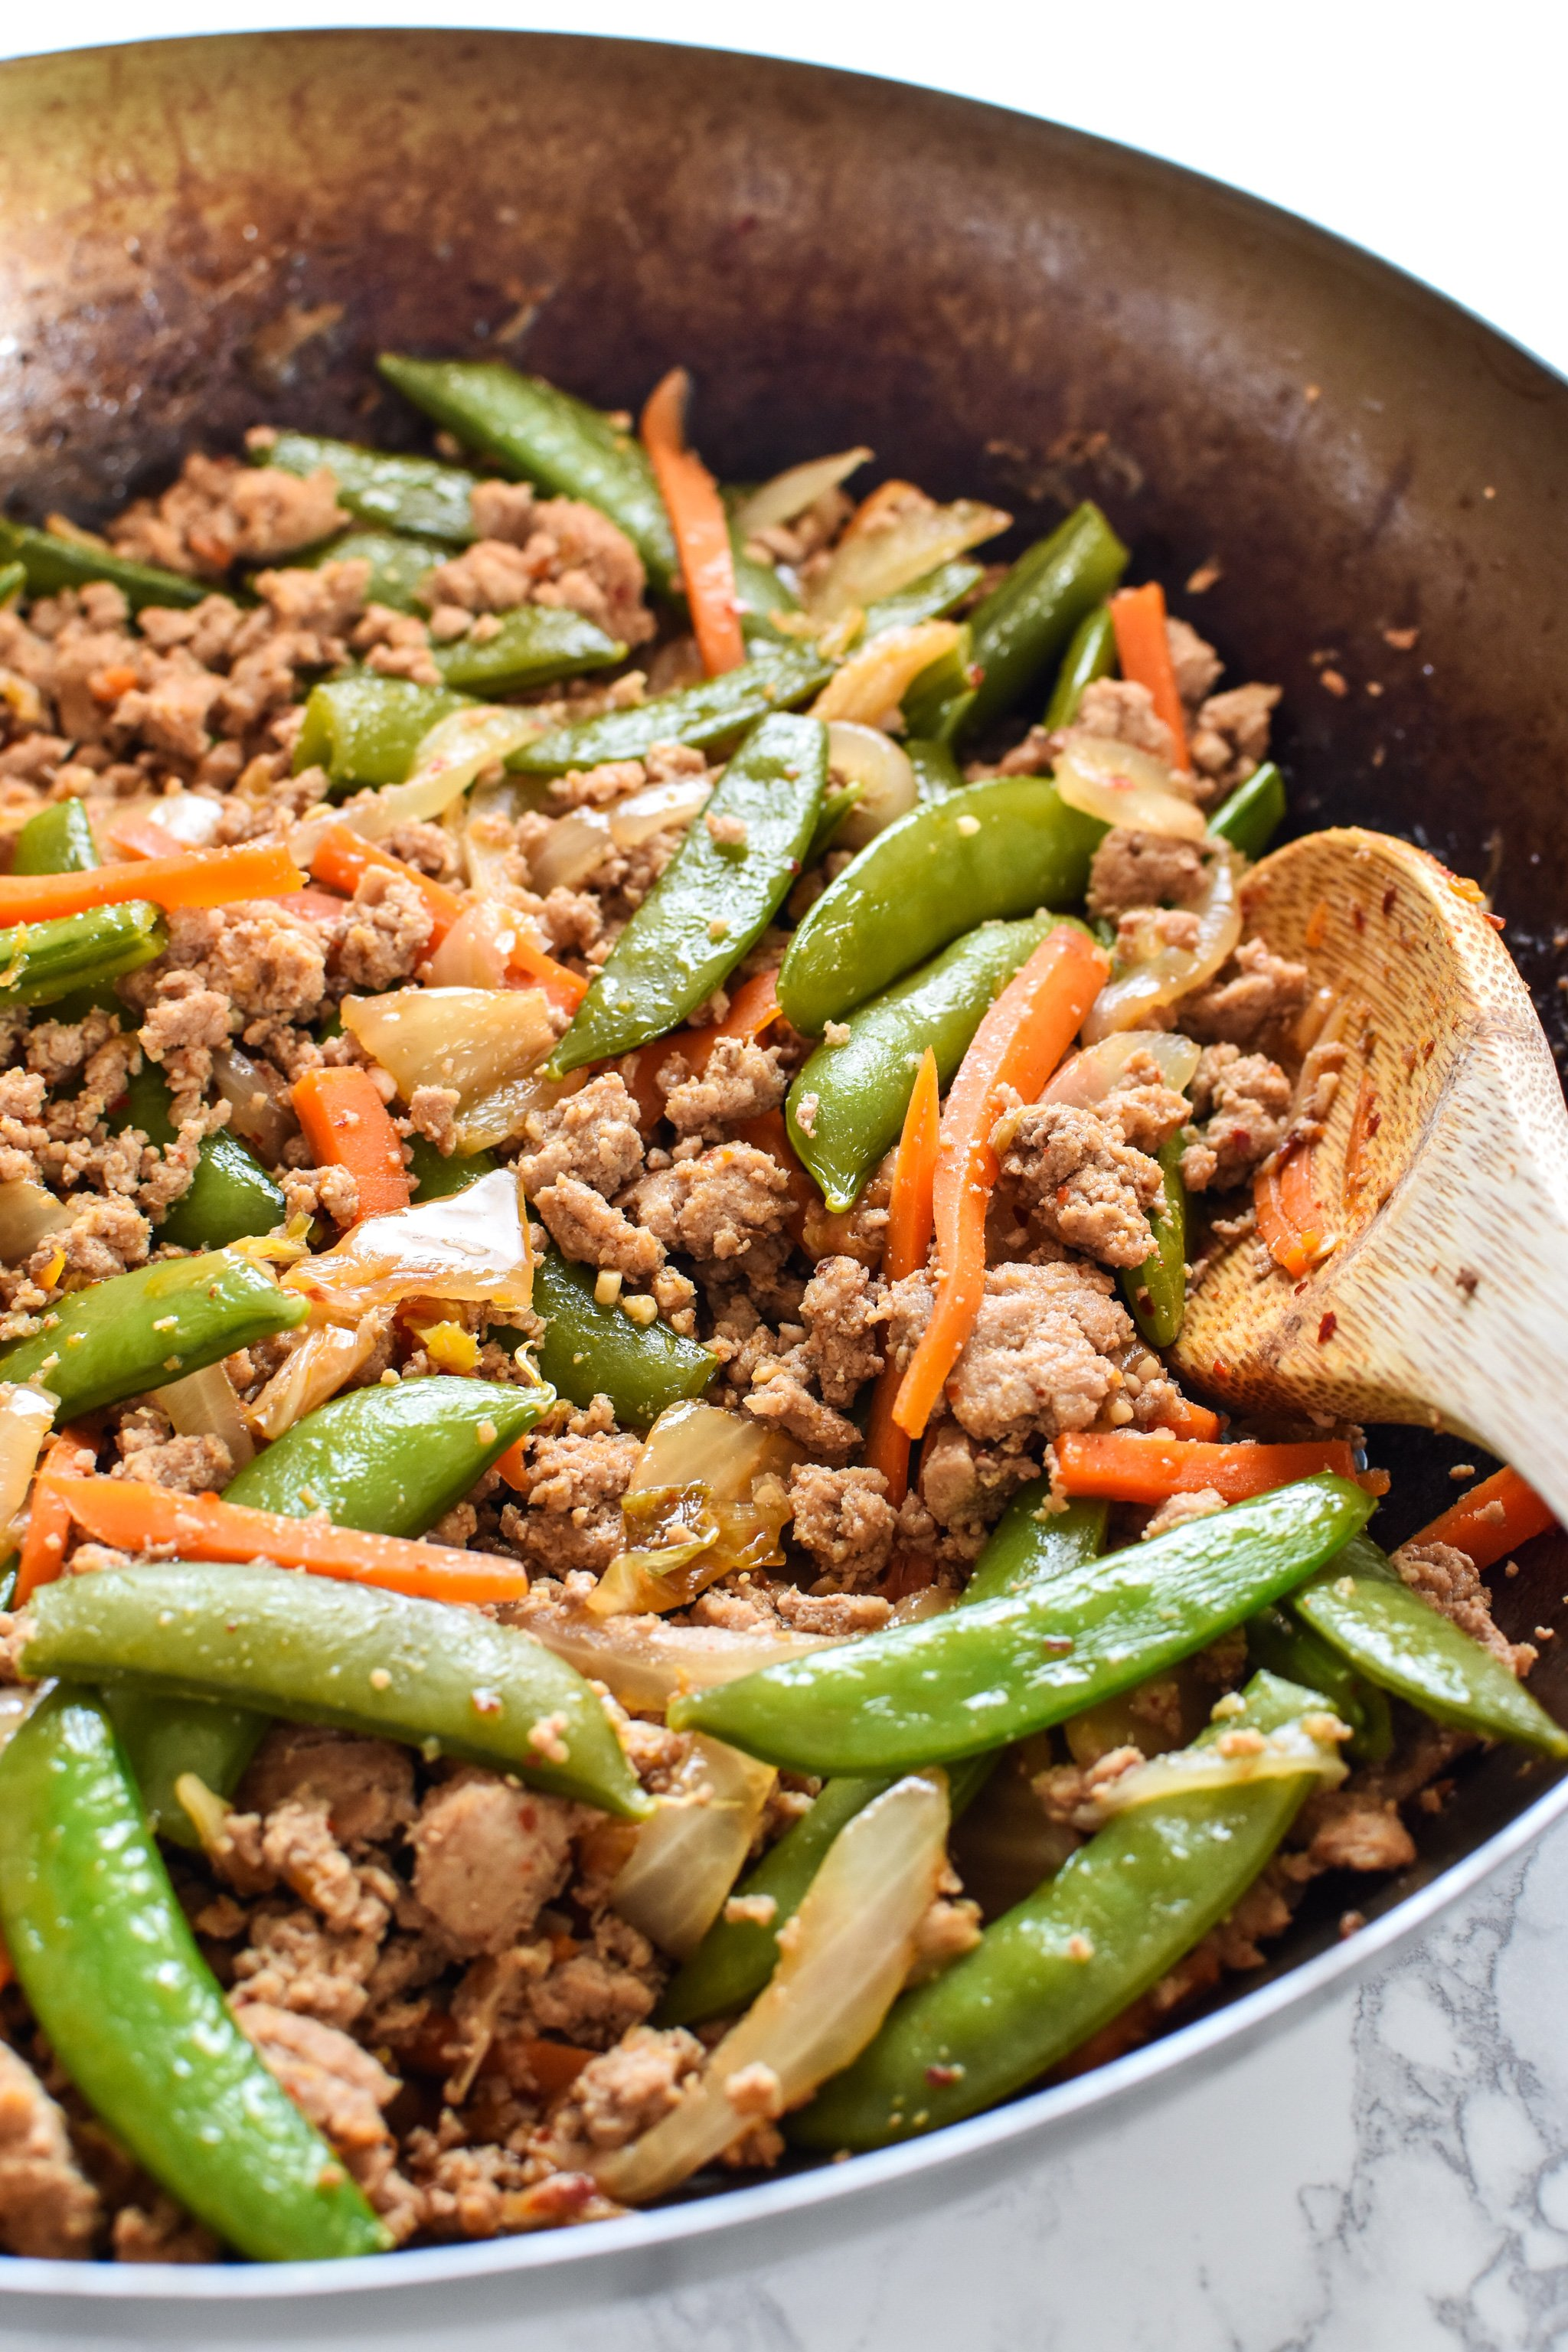 Meal Prep Ground Turkey Snap Pea Stir Fry Rice Bowls - A delicious recipe for veggie filled stir fry, super easy to meal prep for lunch! - ProjectMealPlan.com